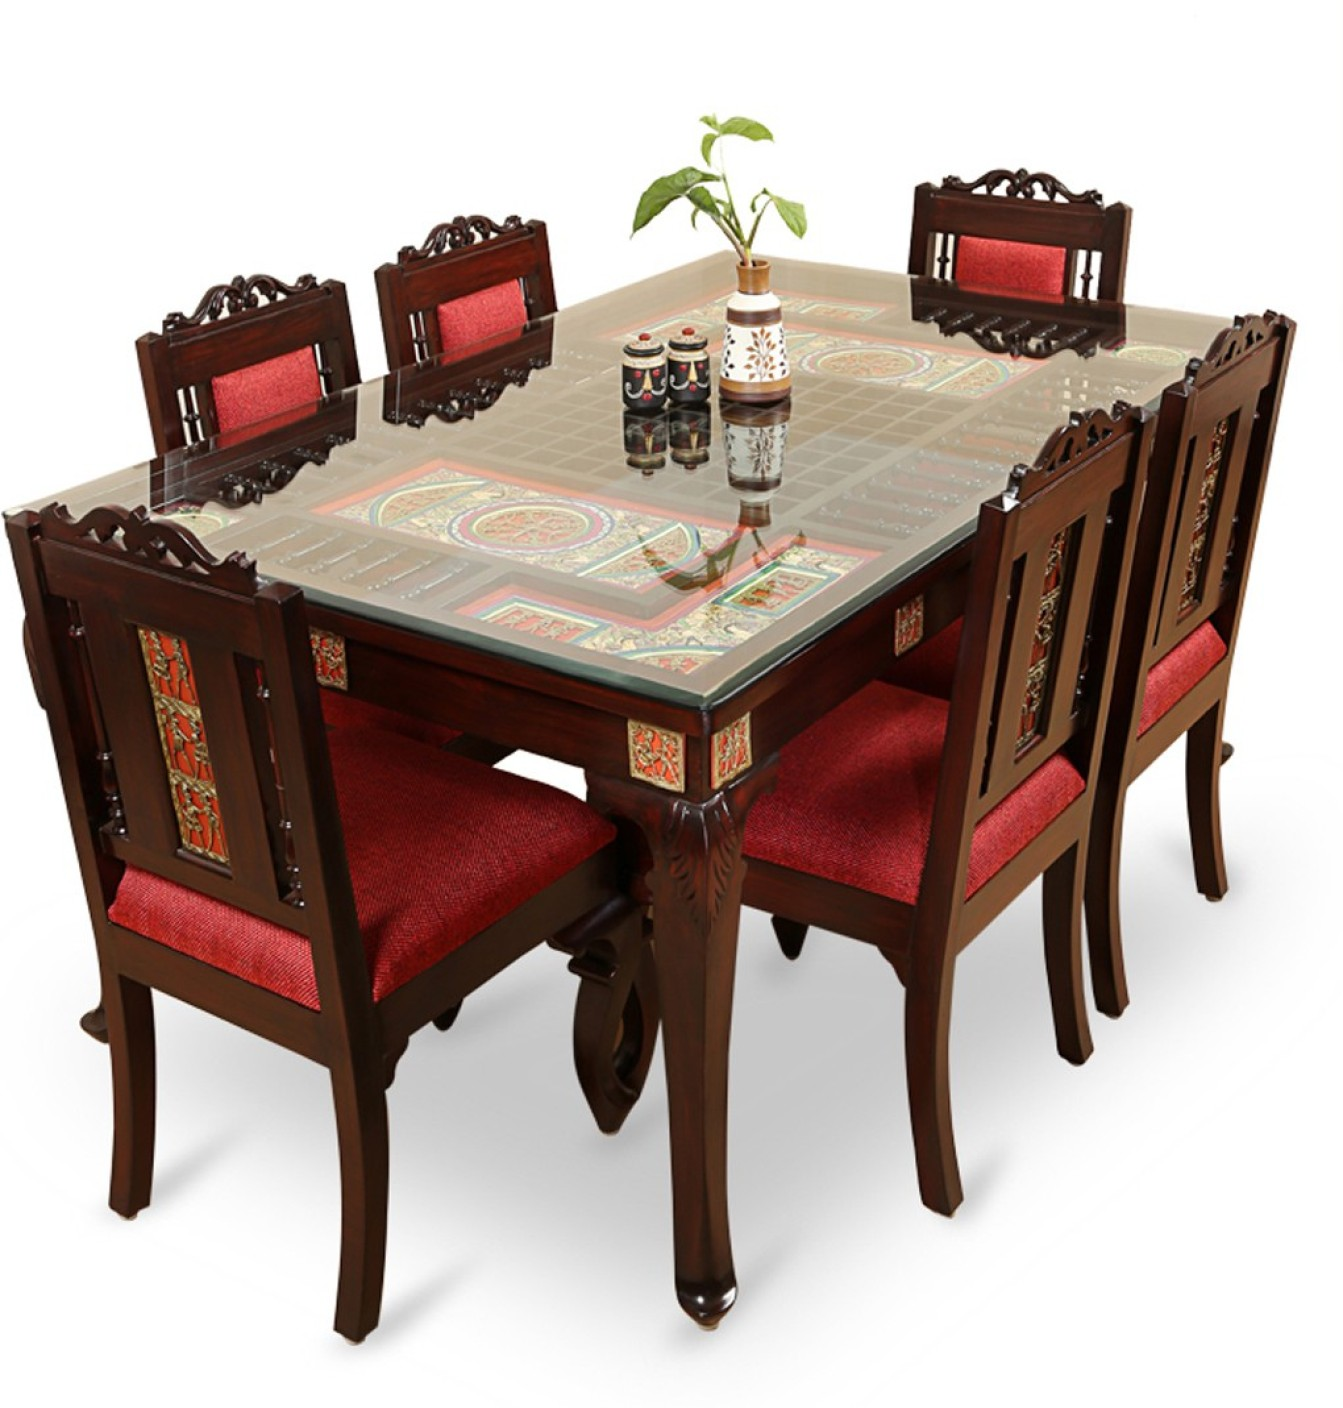 Kitchen Table For 6: ExclusiveLane Teak Wood Solid Wood 6 Seater Dining Set